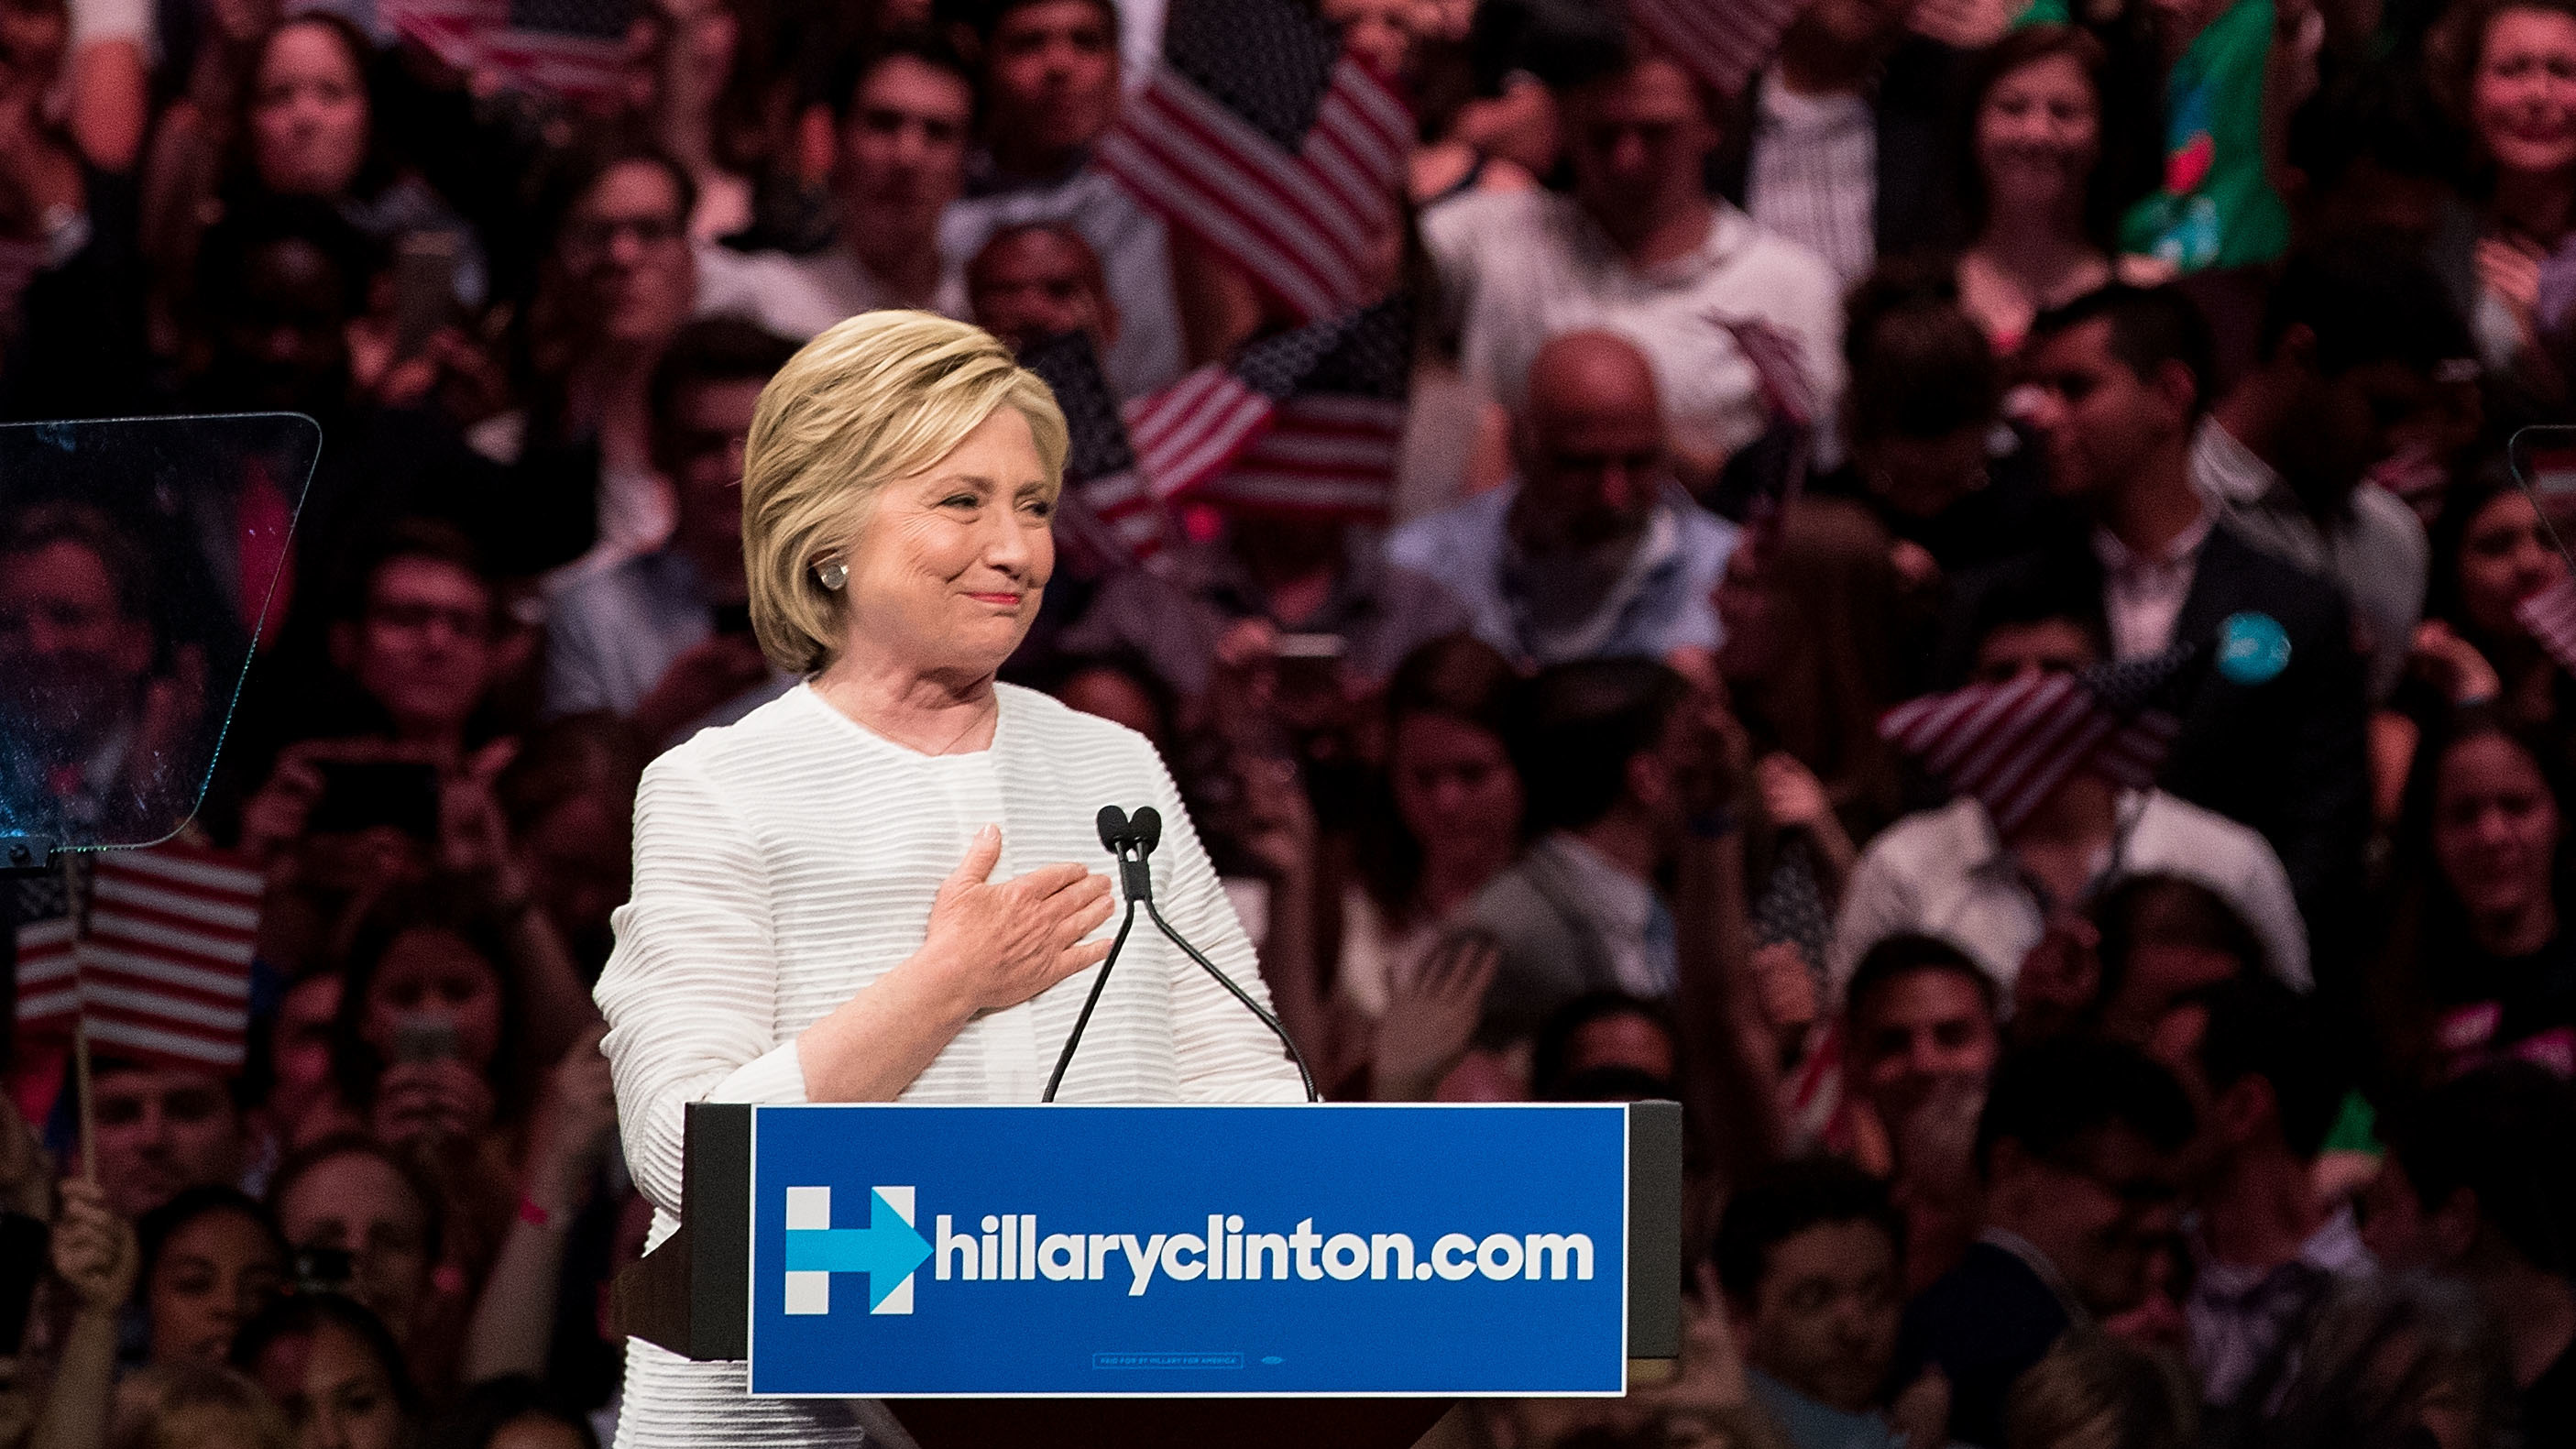 Hillary Clinton, heartened by her supporters' reception, after voting on the June 7th, the night it became clear she would be the first woman nominee of a major-party ticket. (Photo by Drew Angerer/Getty Images)